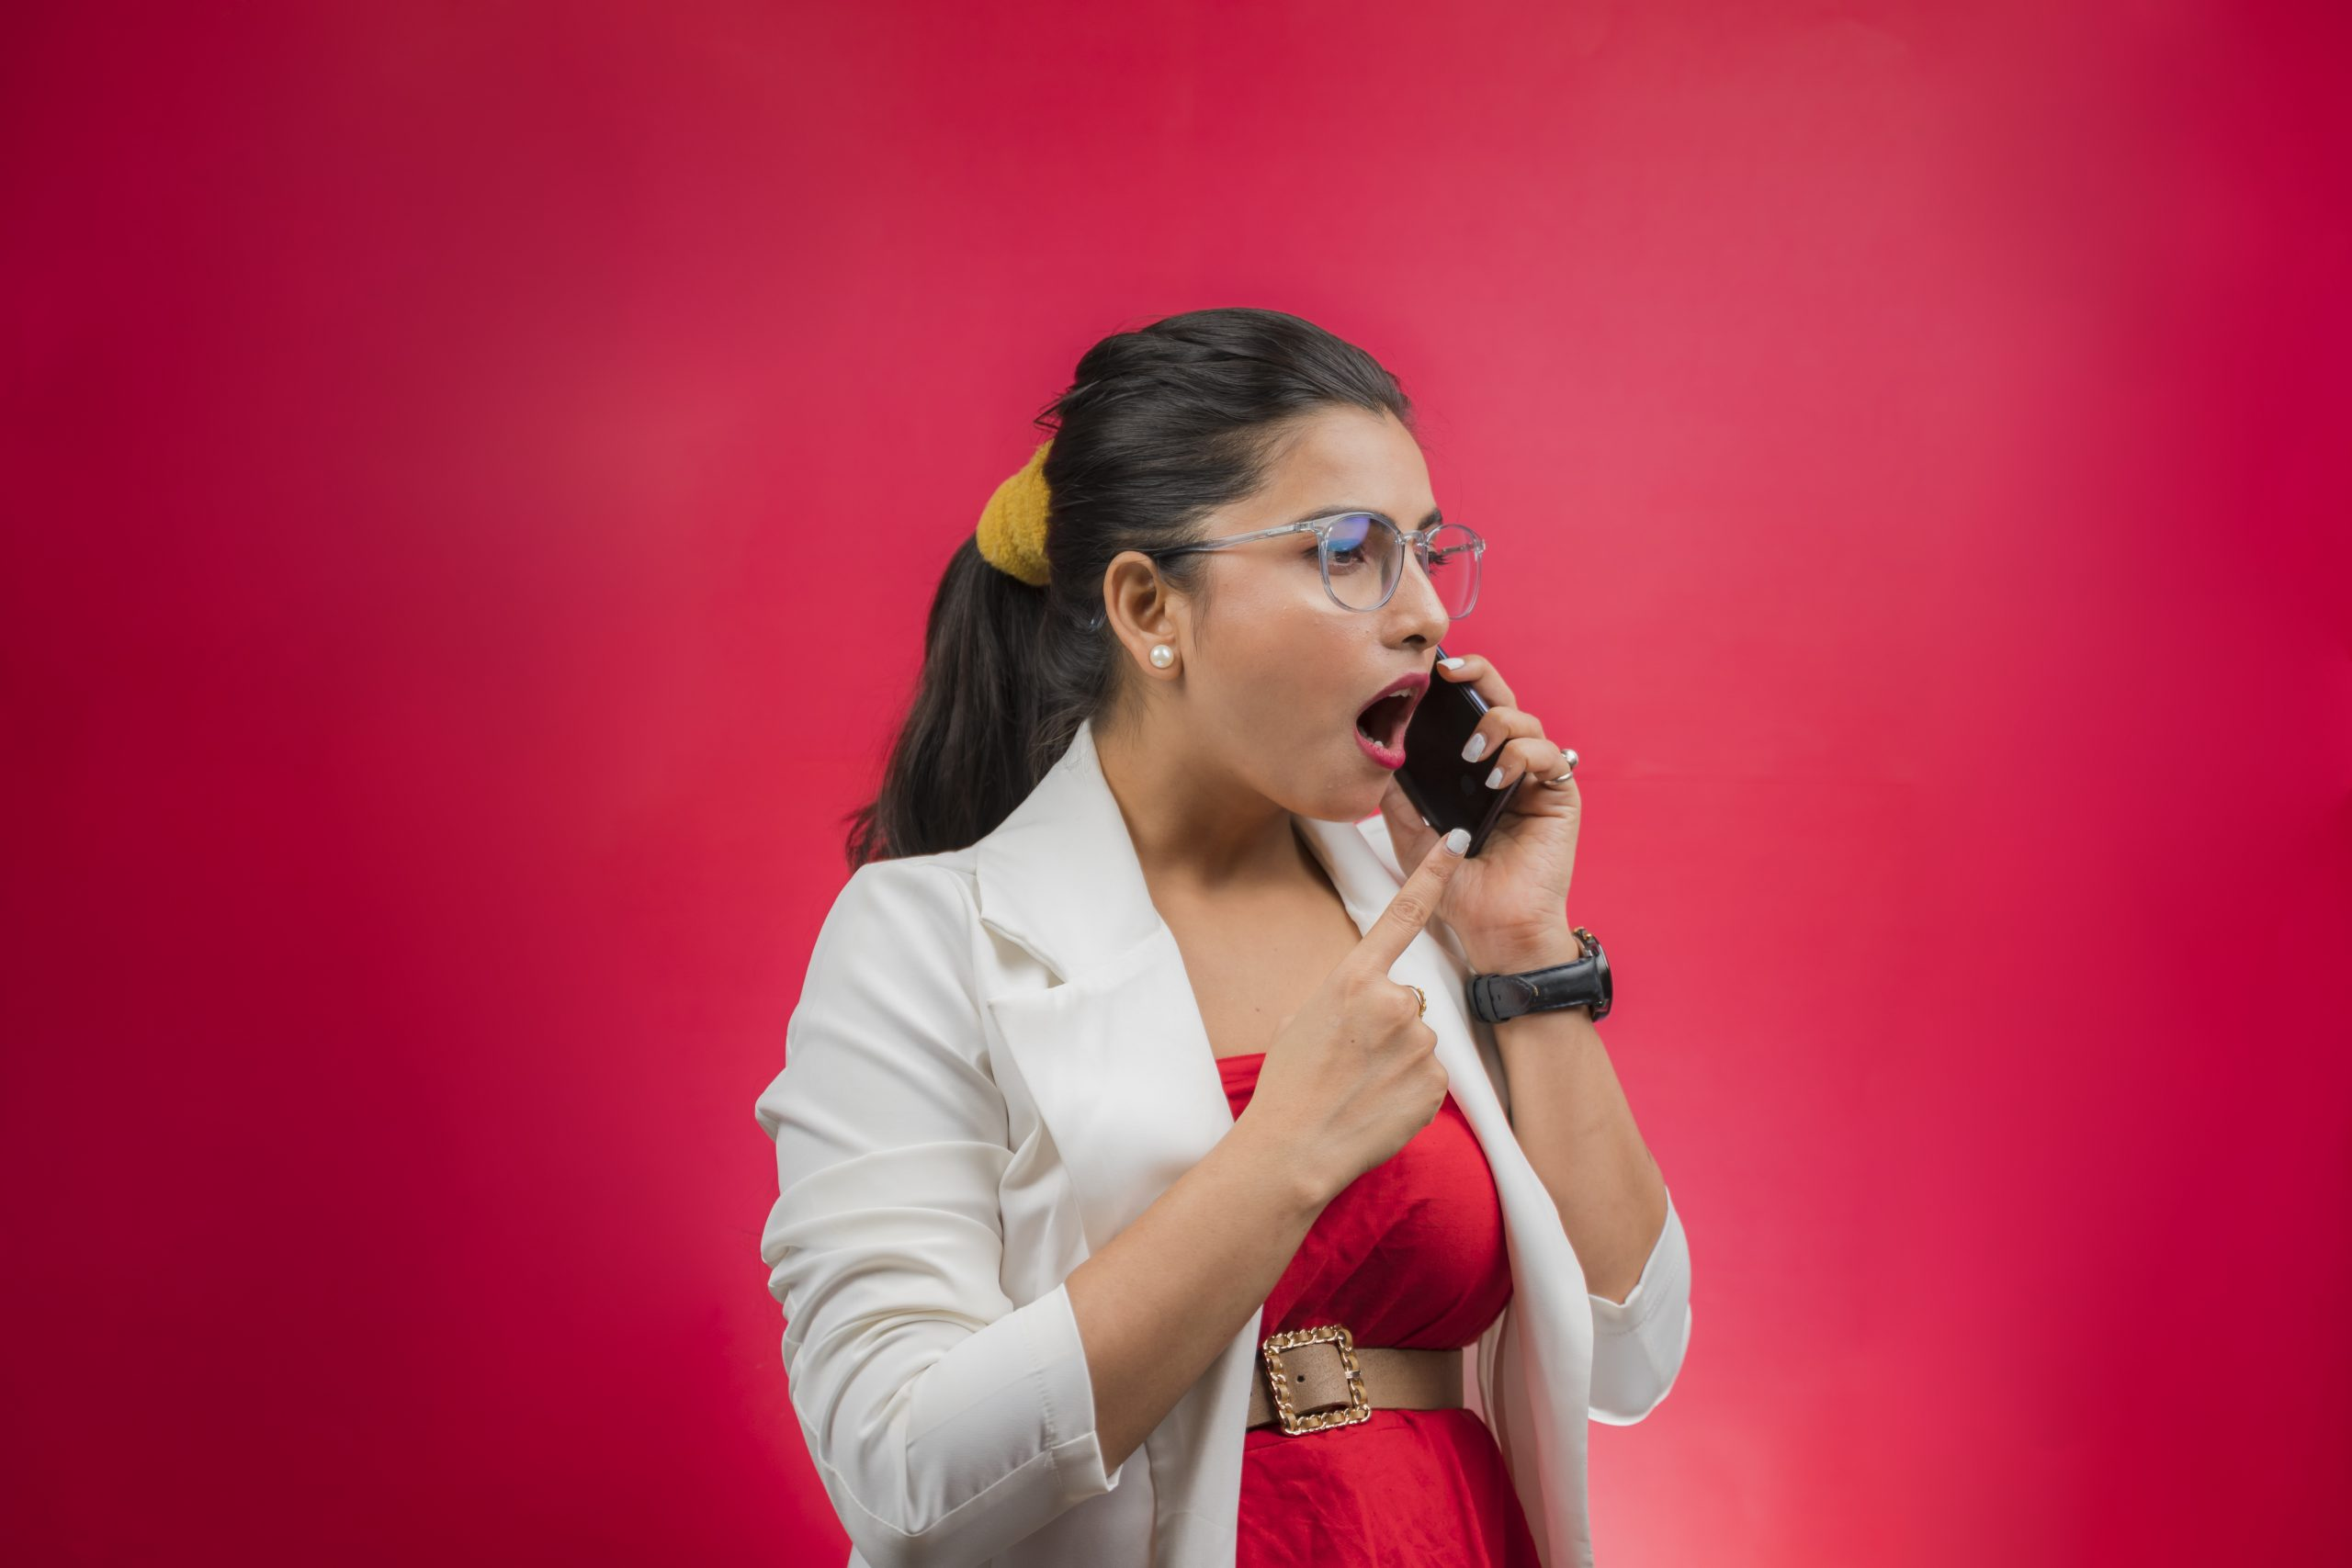 Professional woman shouting on phone